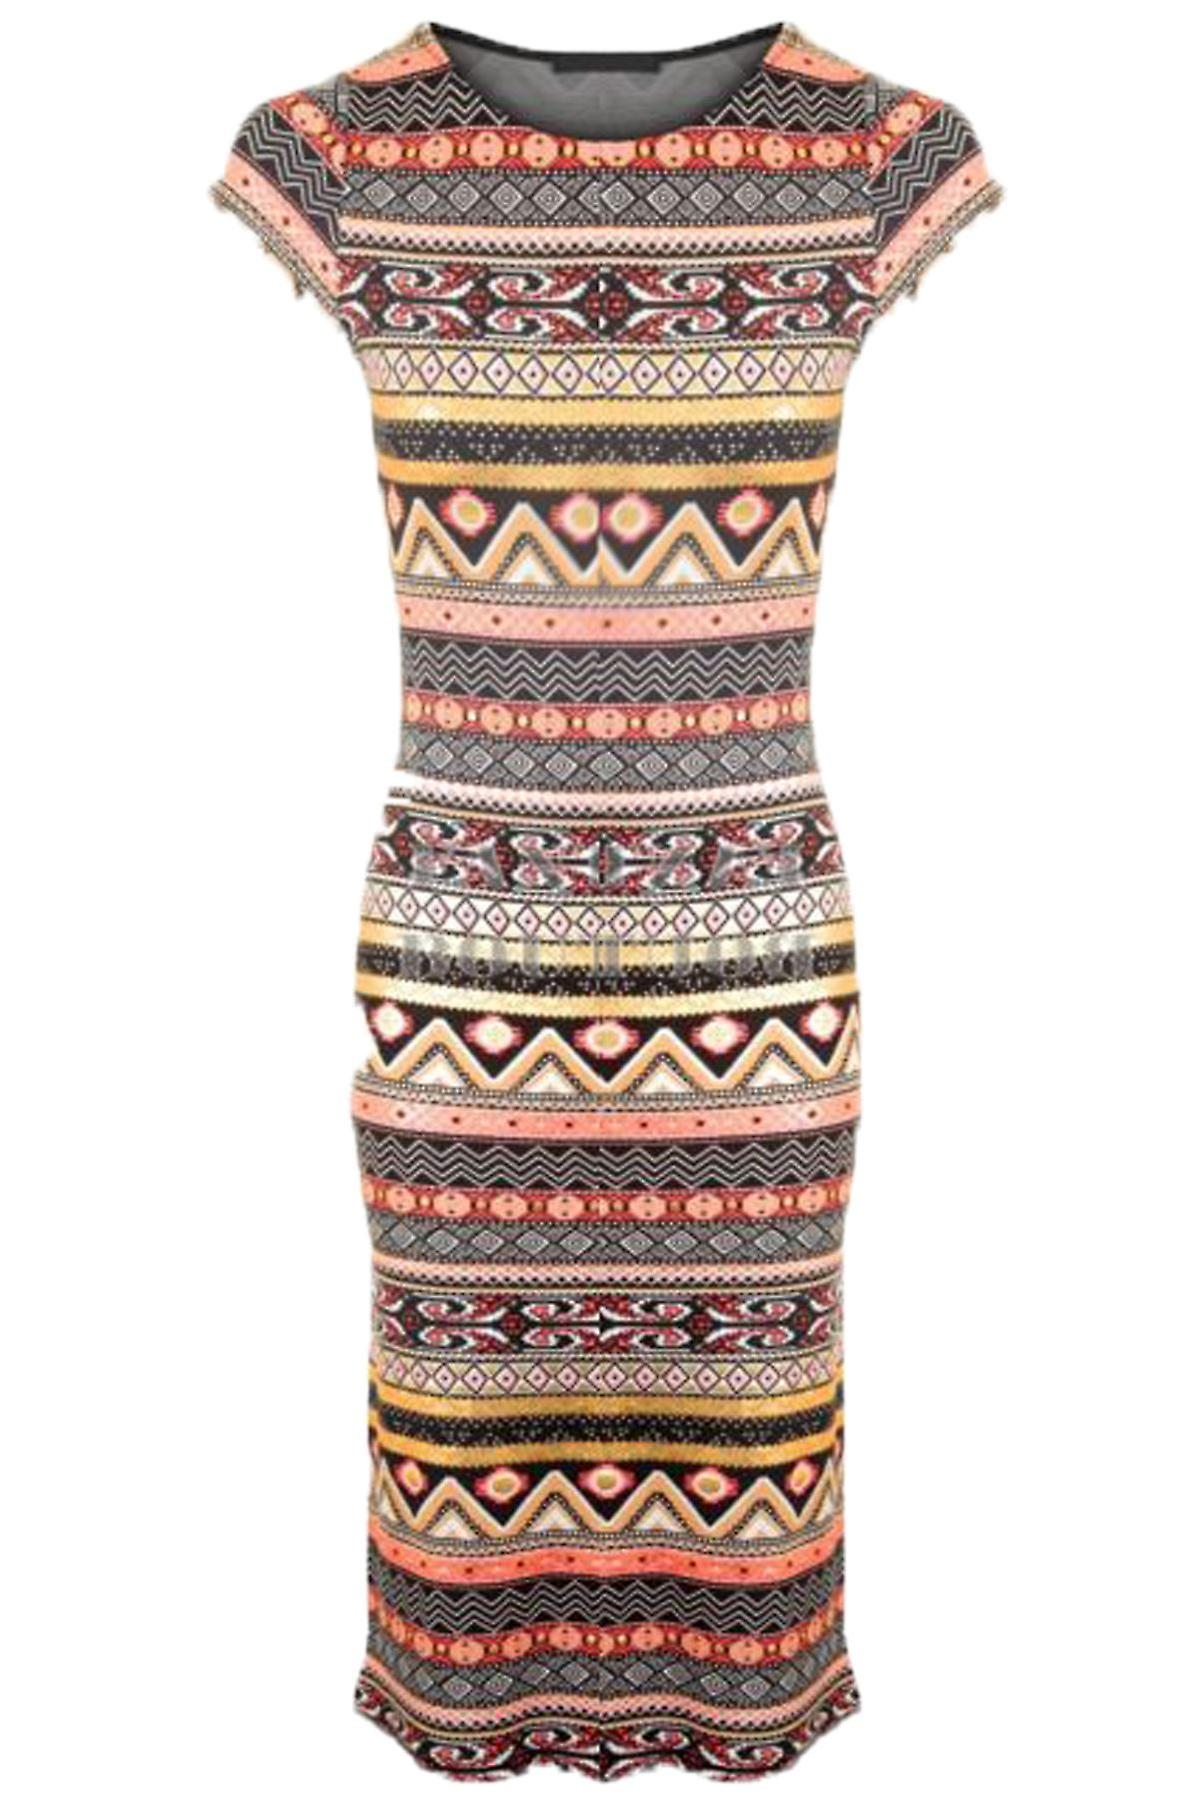 Ladies Floral Foil Aztec Snake Print Mesh Insert Midi Long Bodycon Women's Dress